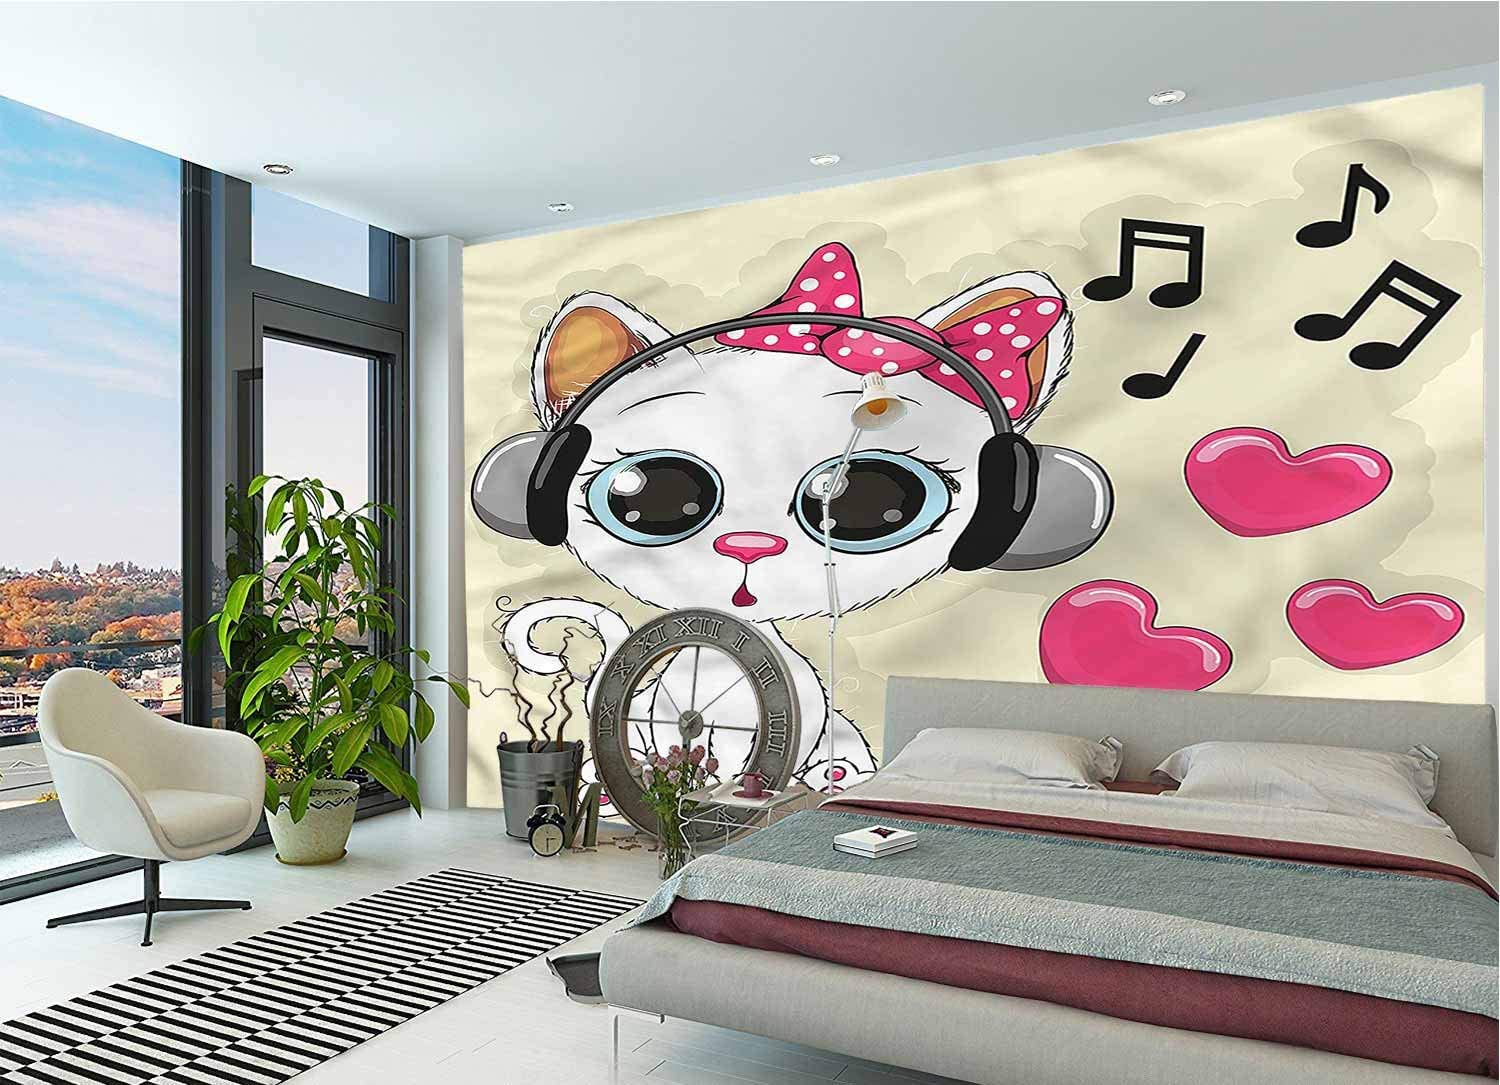 LCGGDB Cartoon Large Wall Mural,Funny Kitty with Headphones Removable Large Sticker Foil Wall Decor for Office Kids Bedroom Nursery Family Decor-96x66 Inch